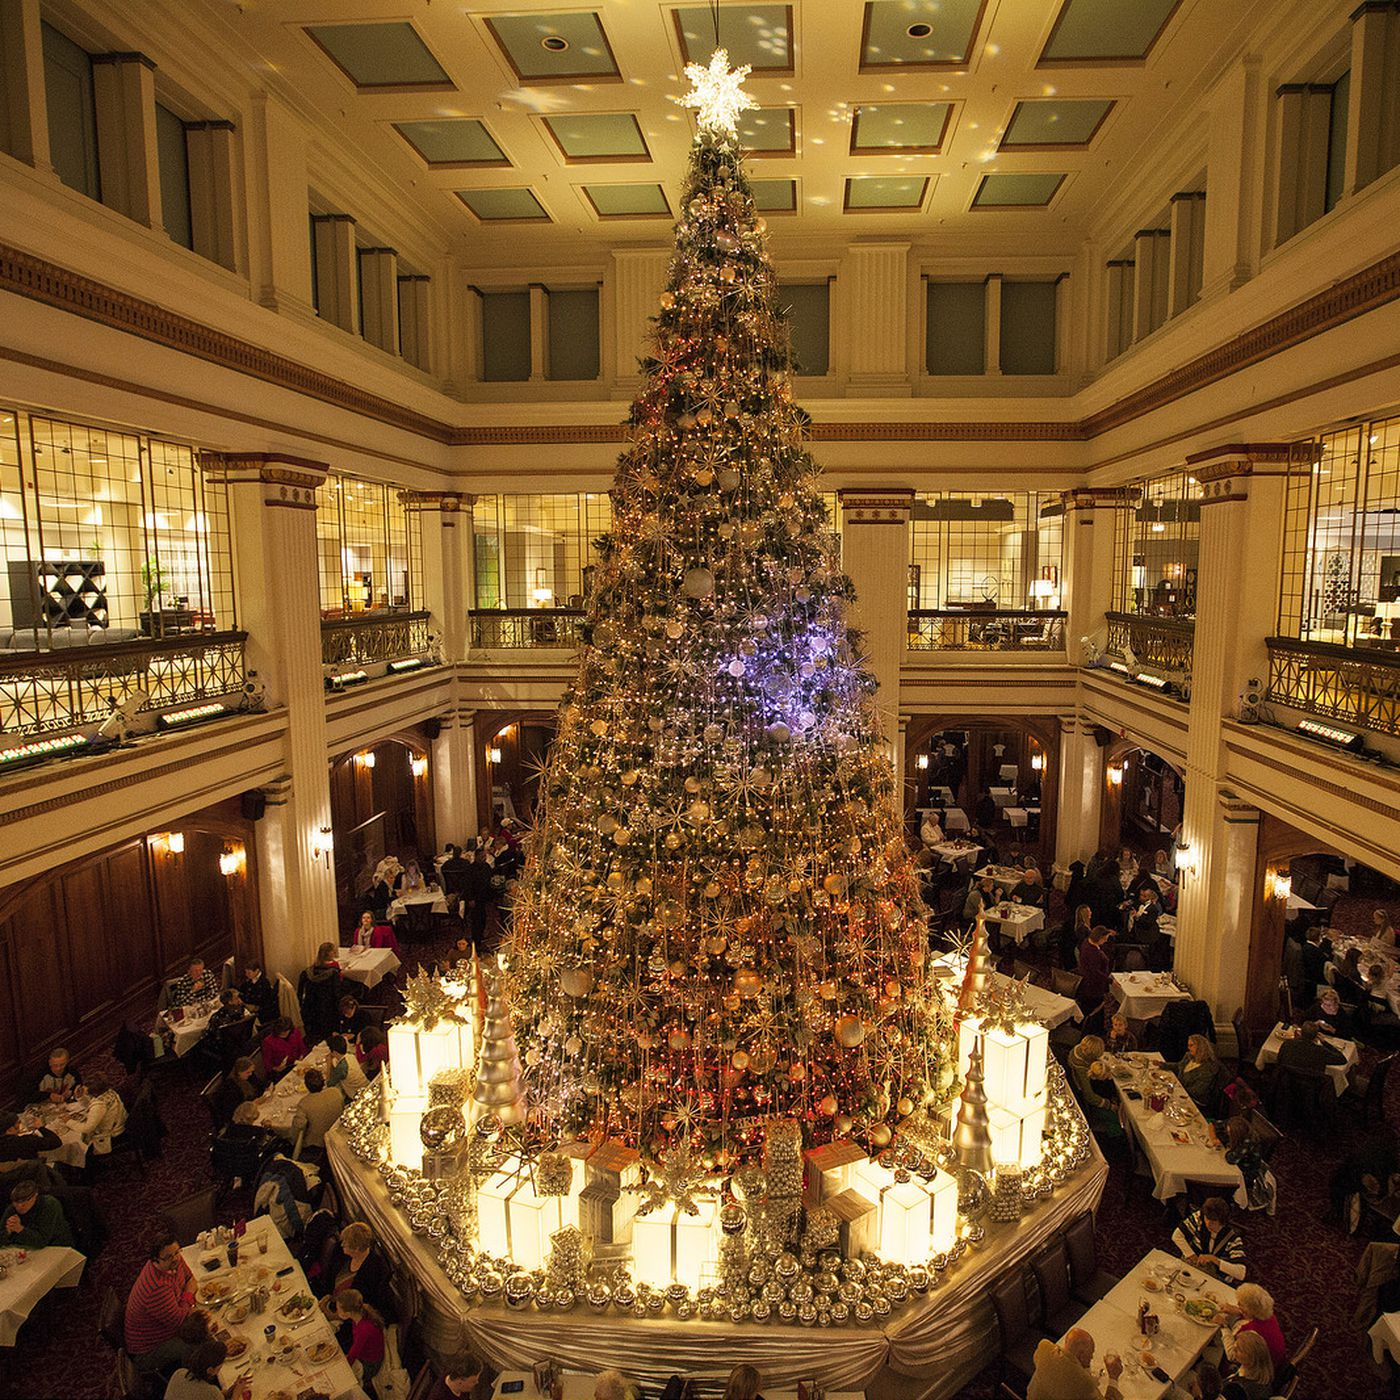 110 year old walnut room on state street wont close macys spokeswoman eater chicago - Is Macys Open On Christmas